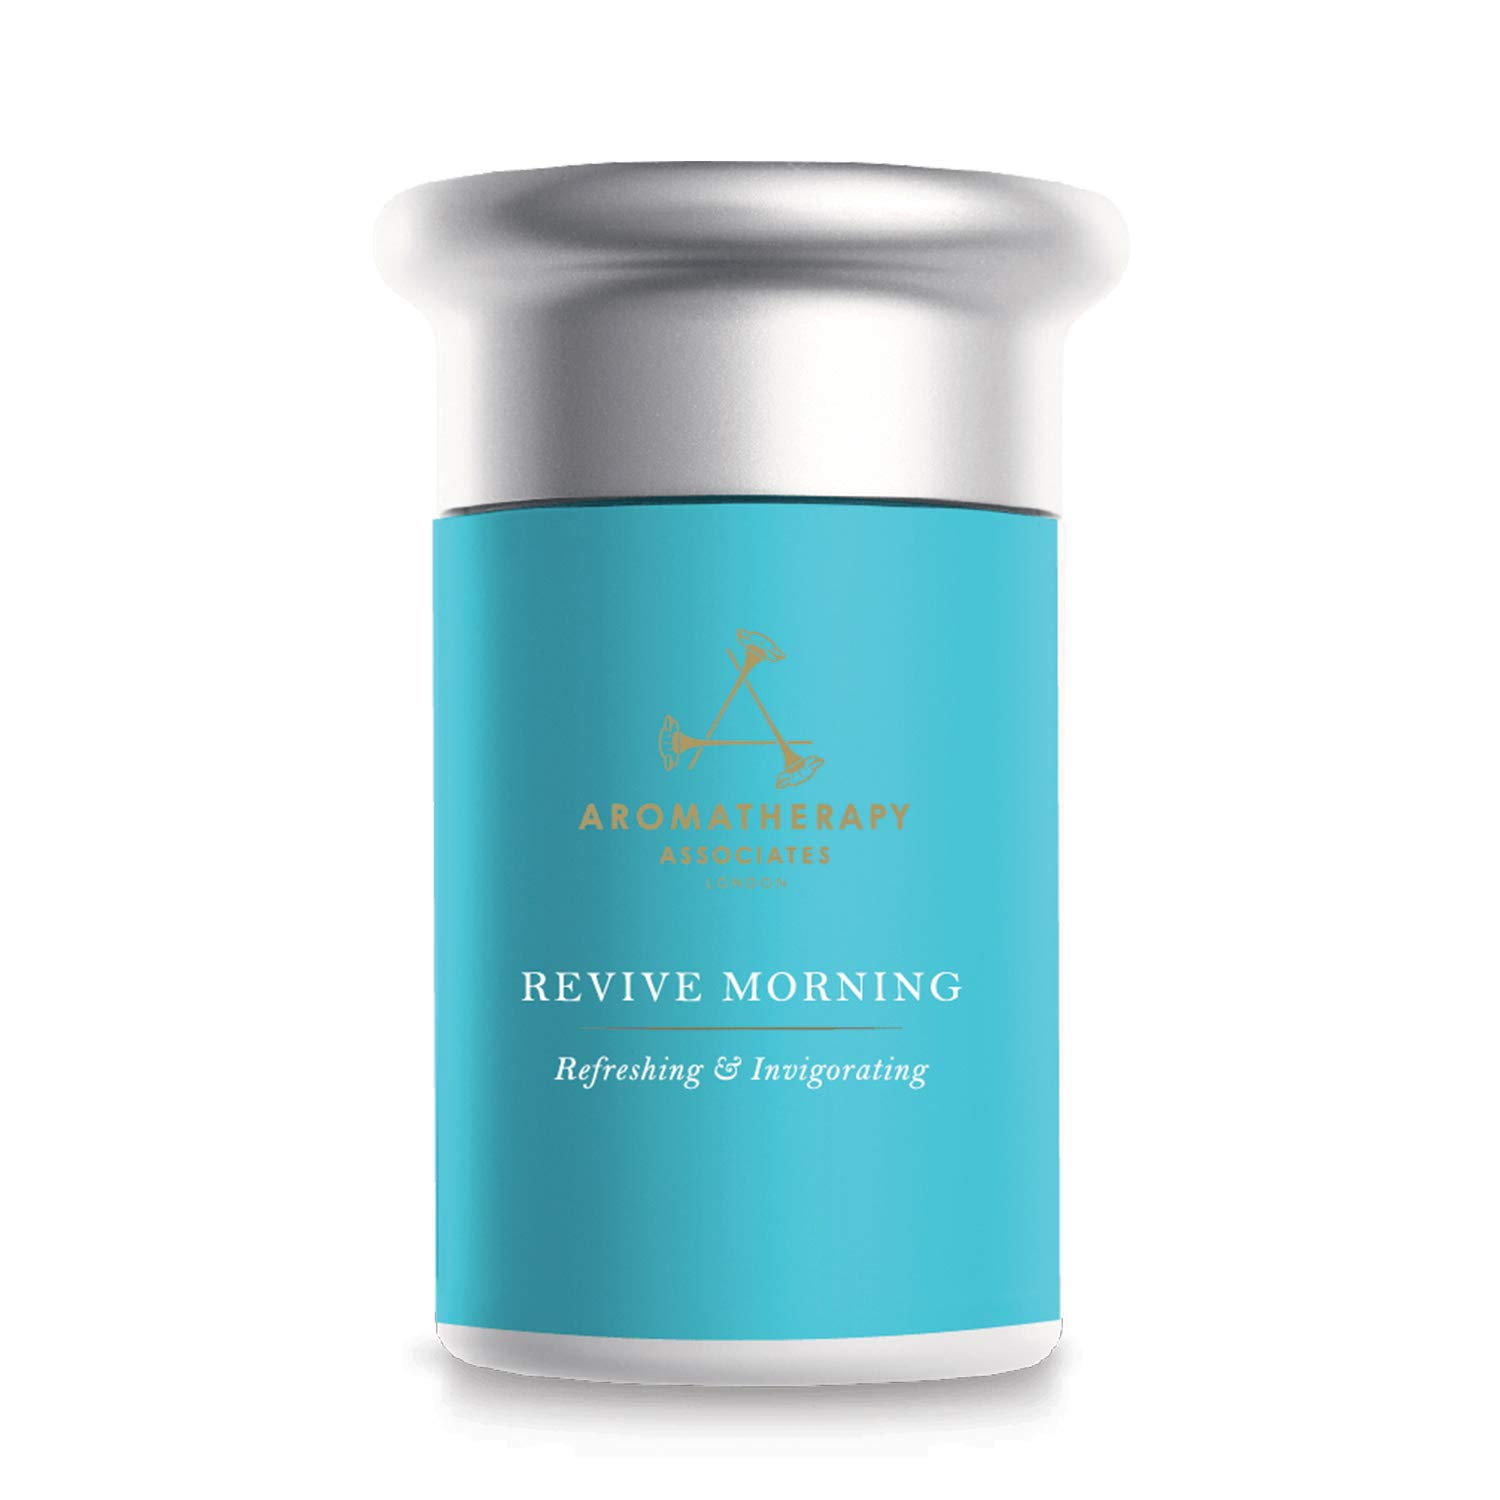 Aera Revive Morning Scented Aromatherapy Essential Oil Capsule - Mood Changing Premium Grade Capsule - Lasts 500 Hours - Schedule Using App Smart 2.0 Diffusers - State of The Art Diffuser Technology